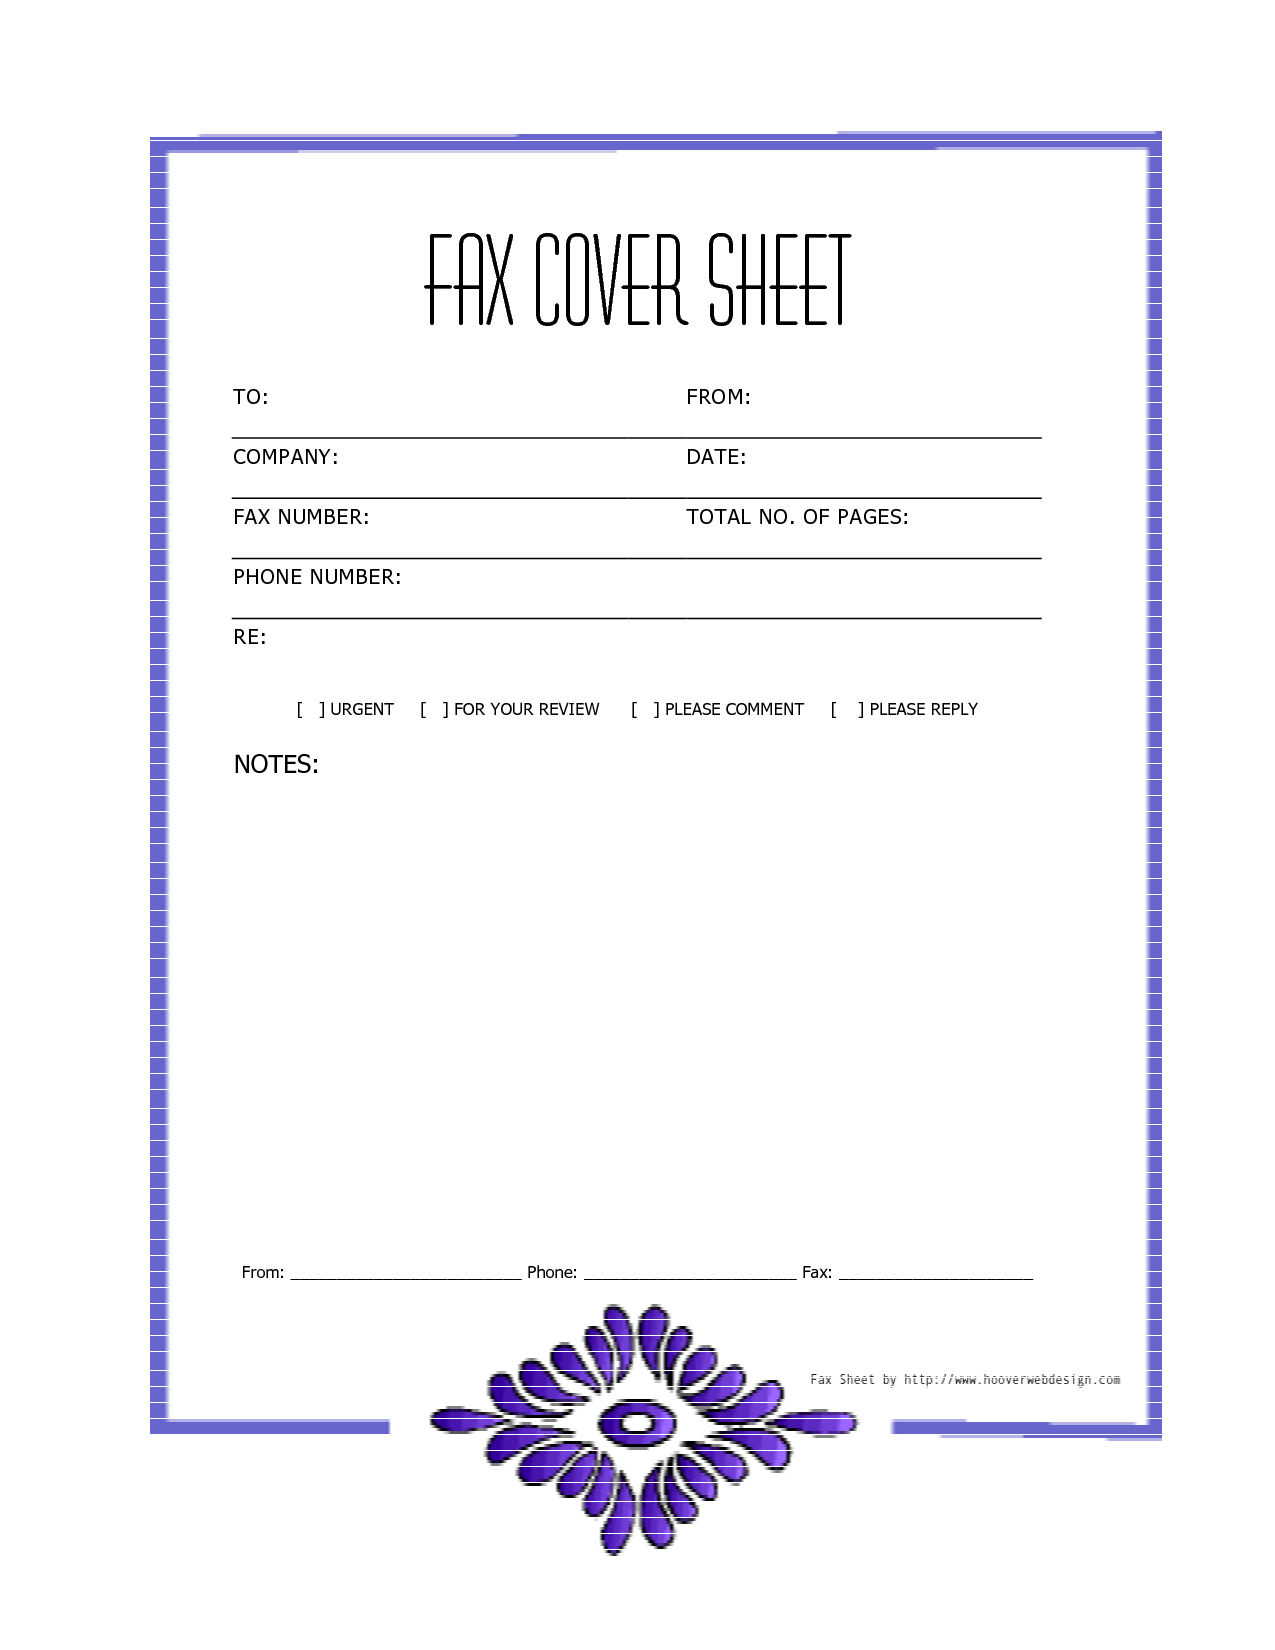 Free Printable Fax Cover Letter Template - Free Downloads Fax Covers Sheets